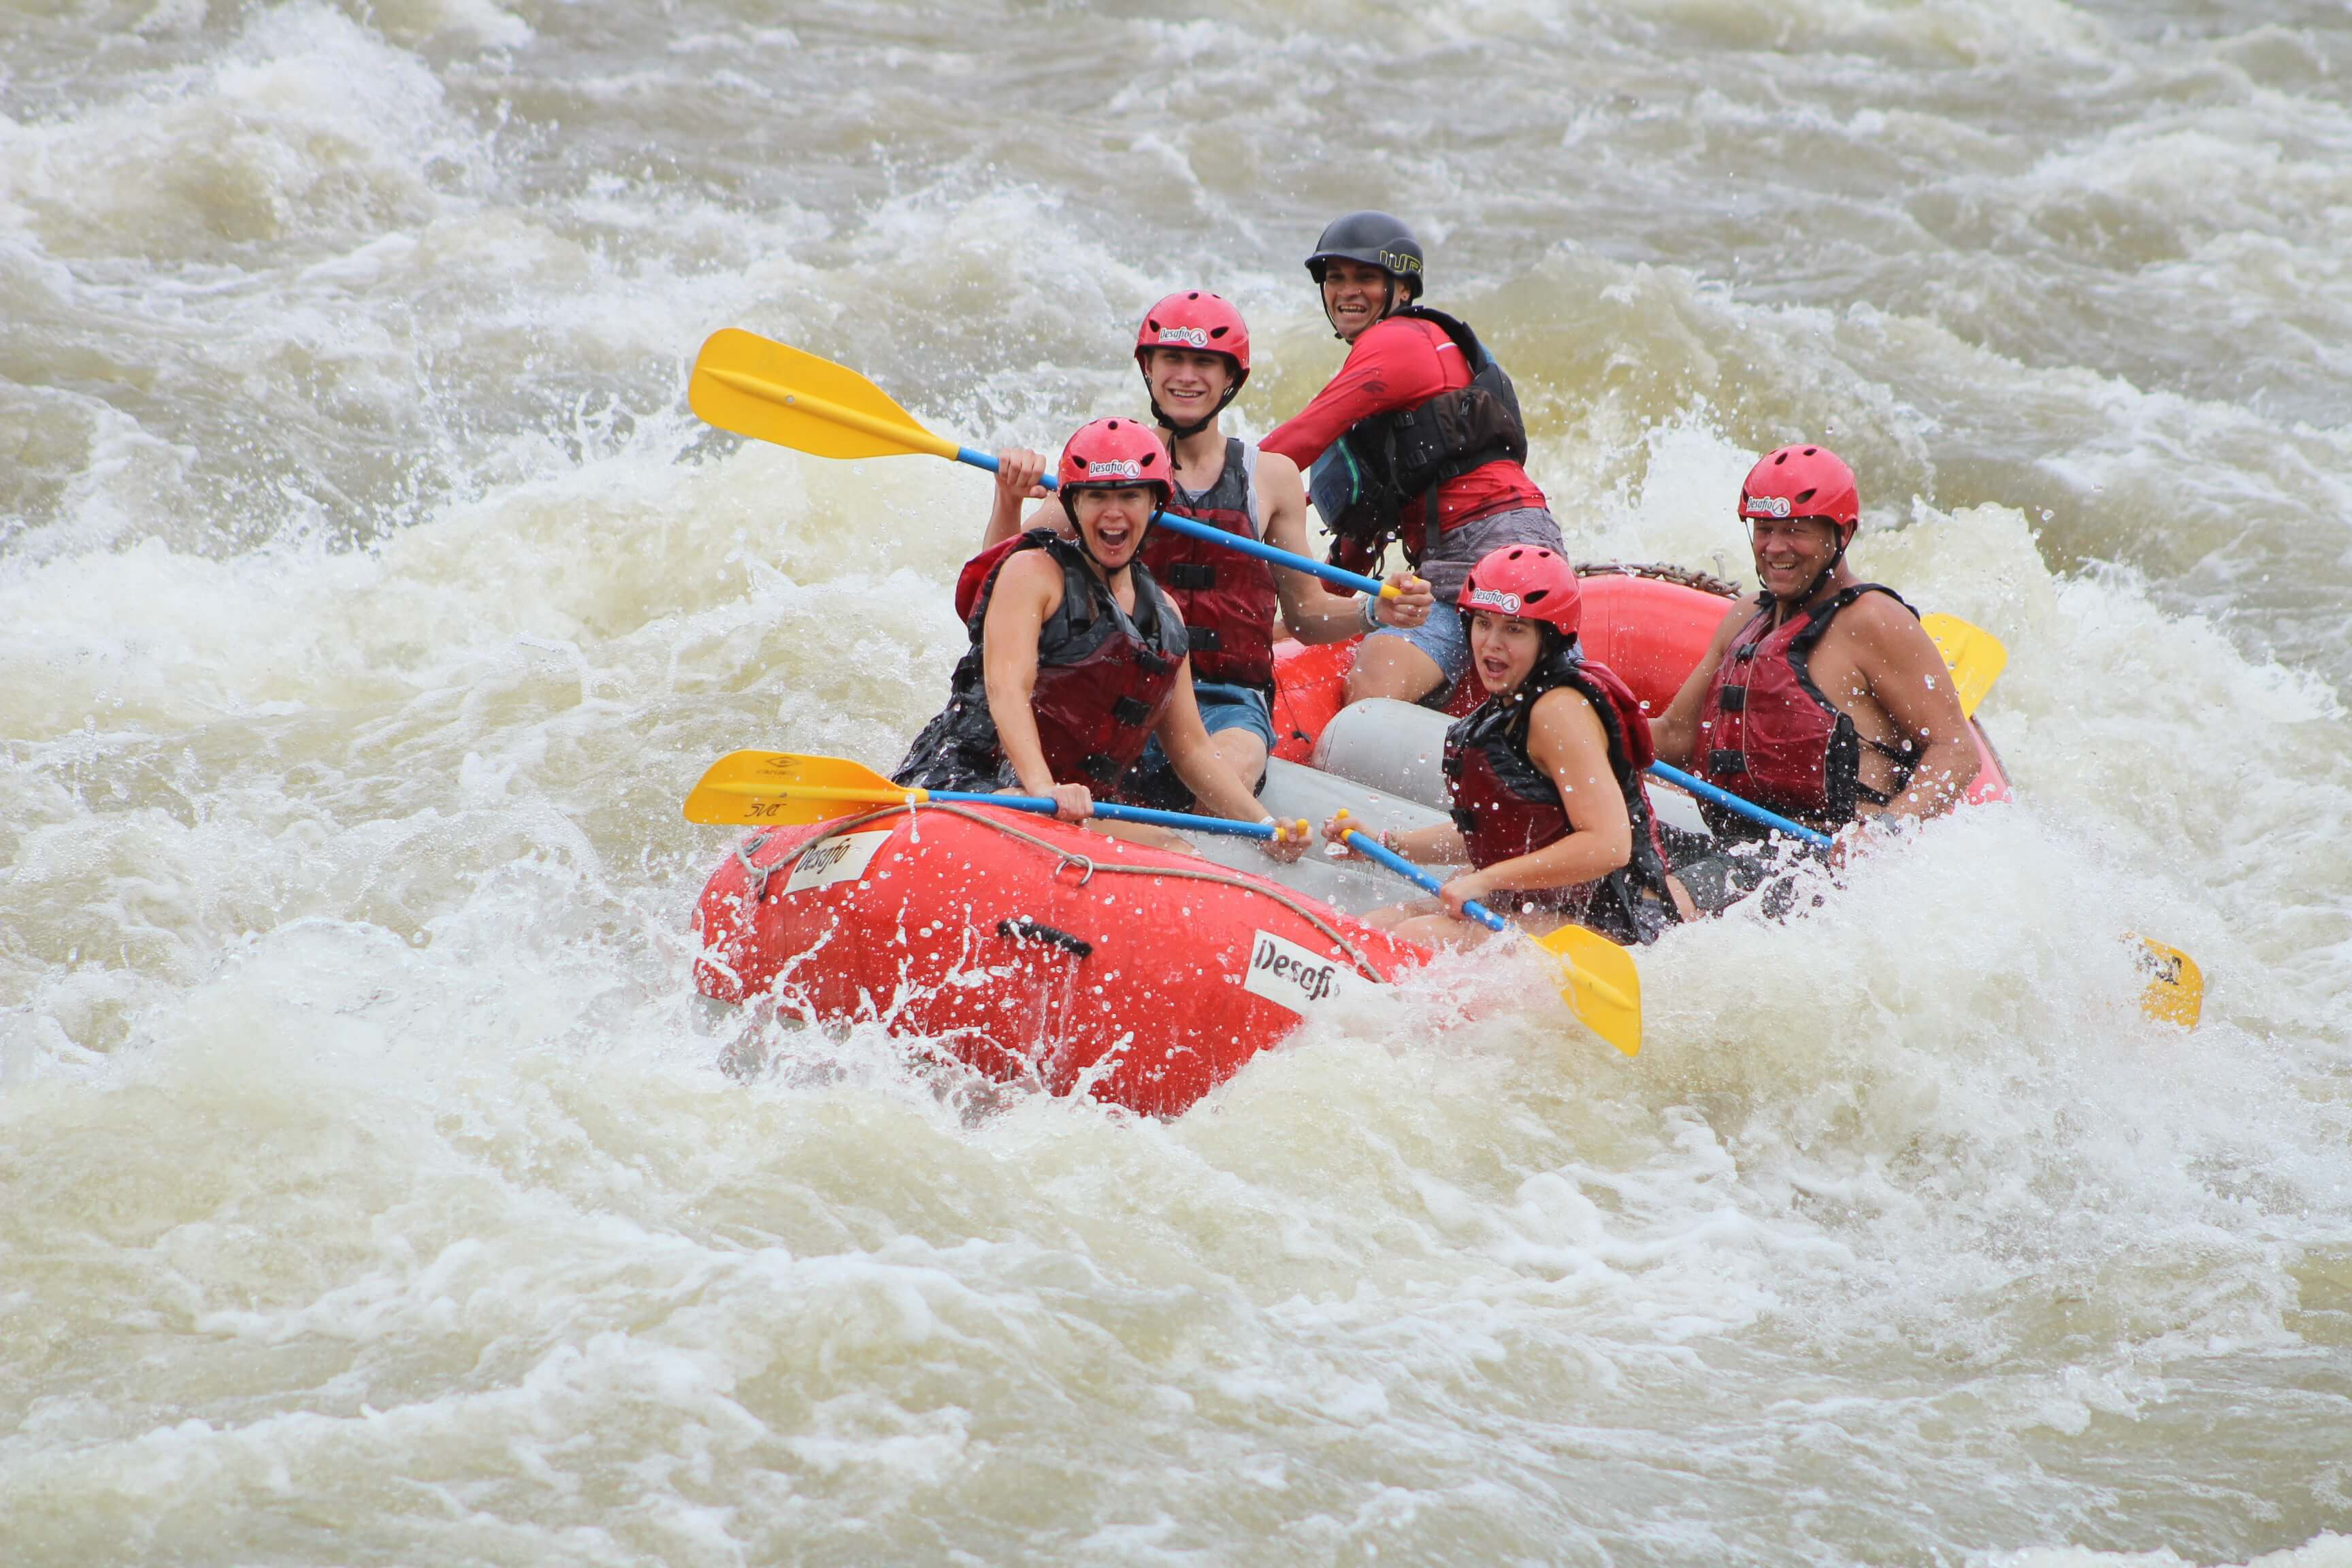 Get ready for one of the most-extreme white waterrafting trips in Costa Rica!